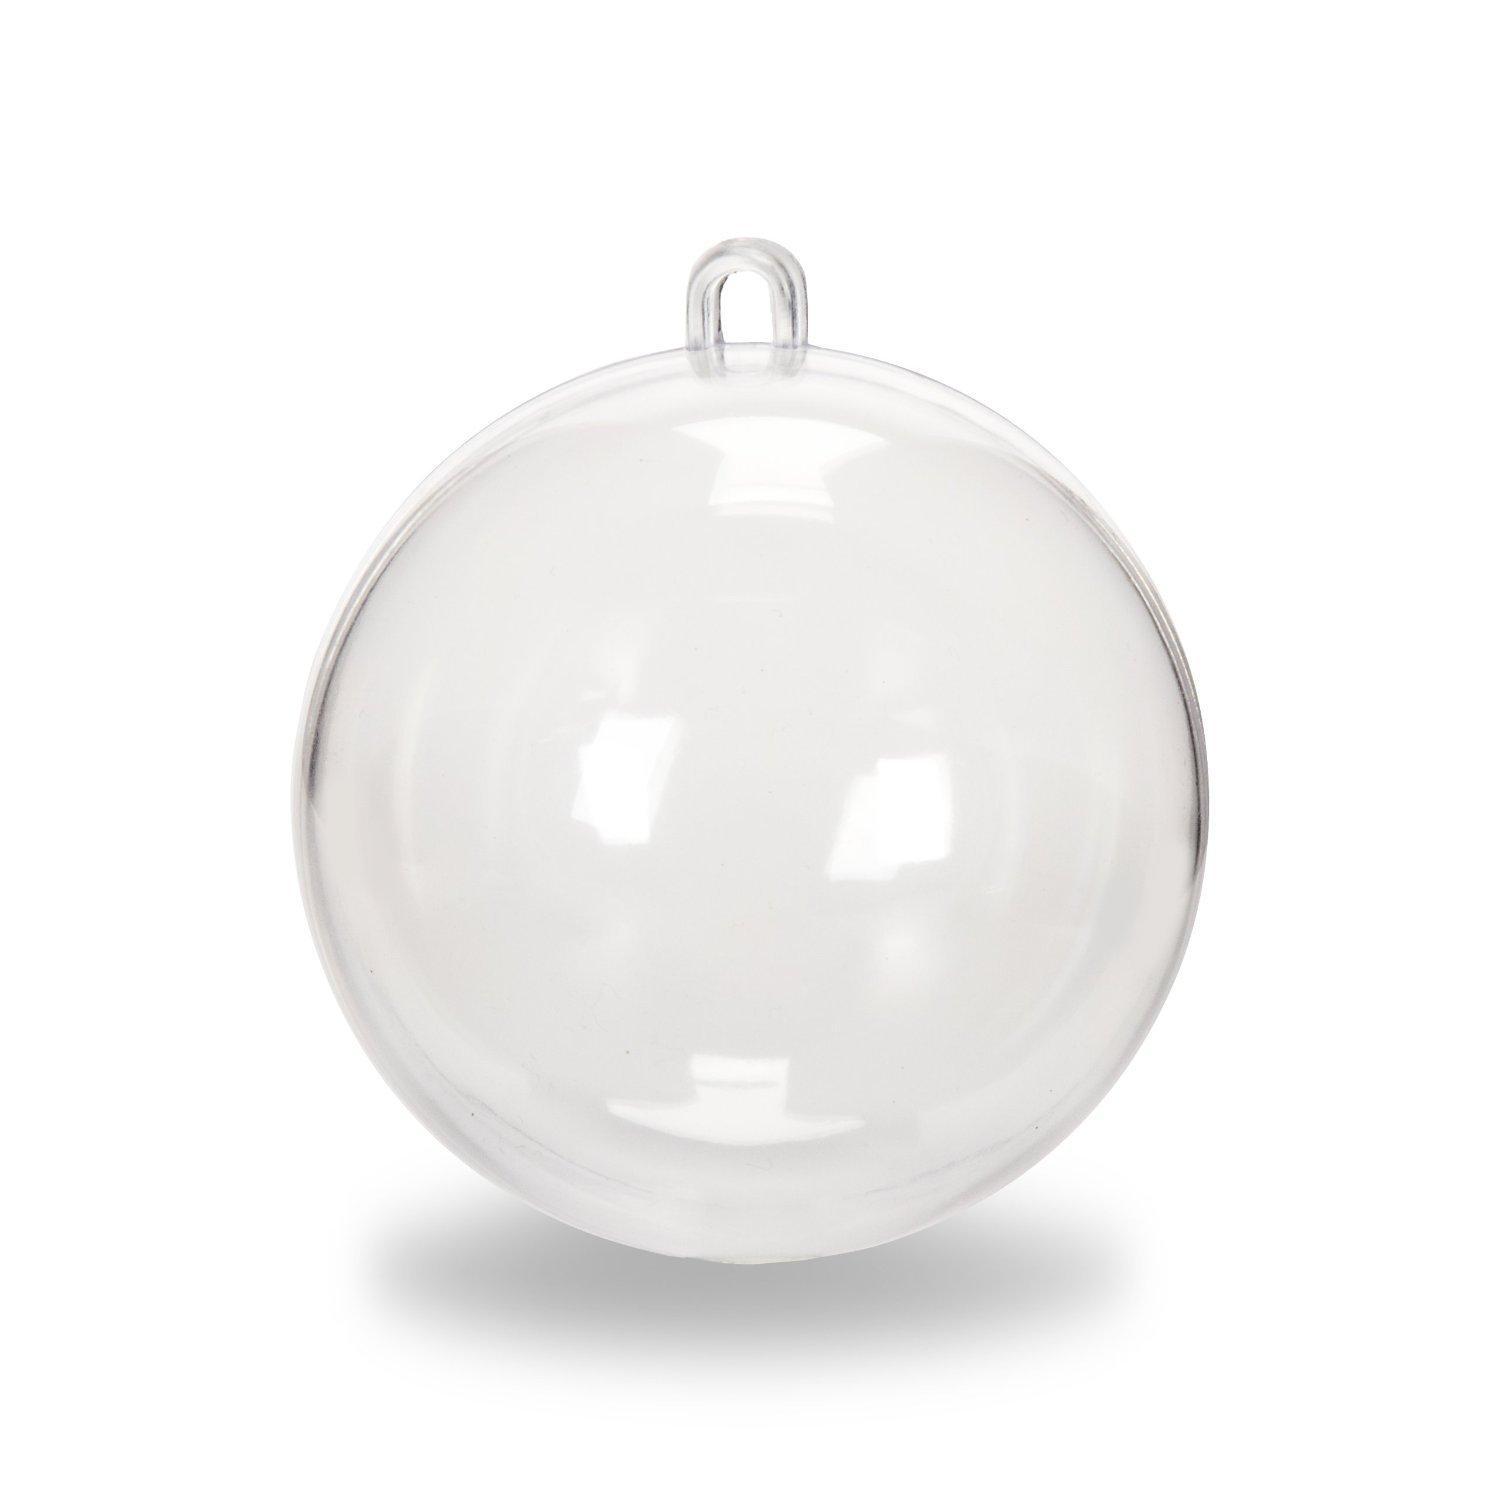 Acrylic clear ornaments - Amazon Com Darice Plastic Ball Ornament 70mm Clear 1 Ball Home Kitchen